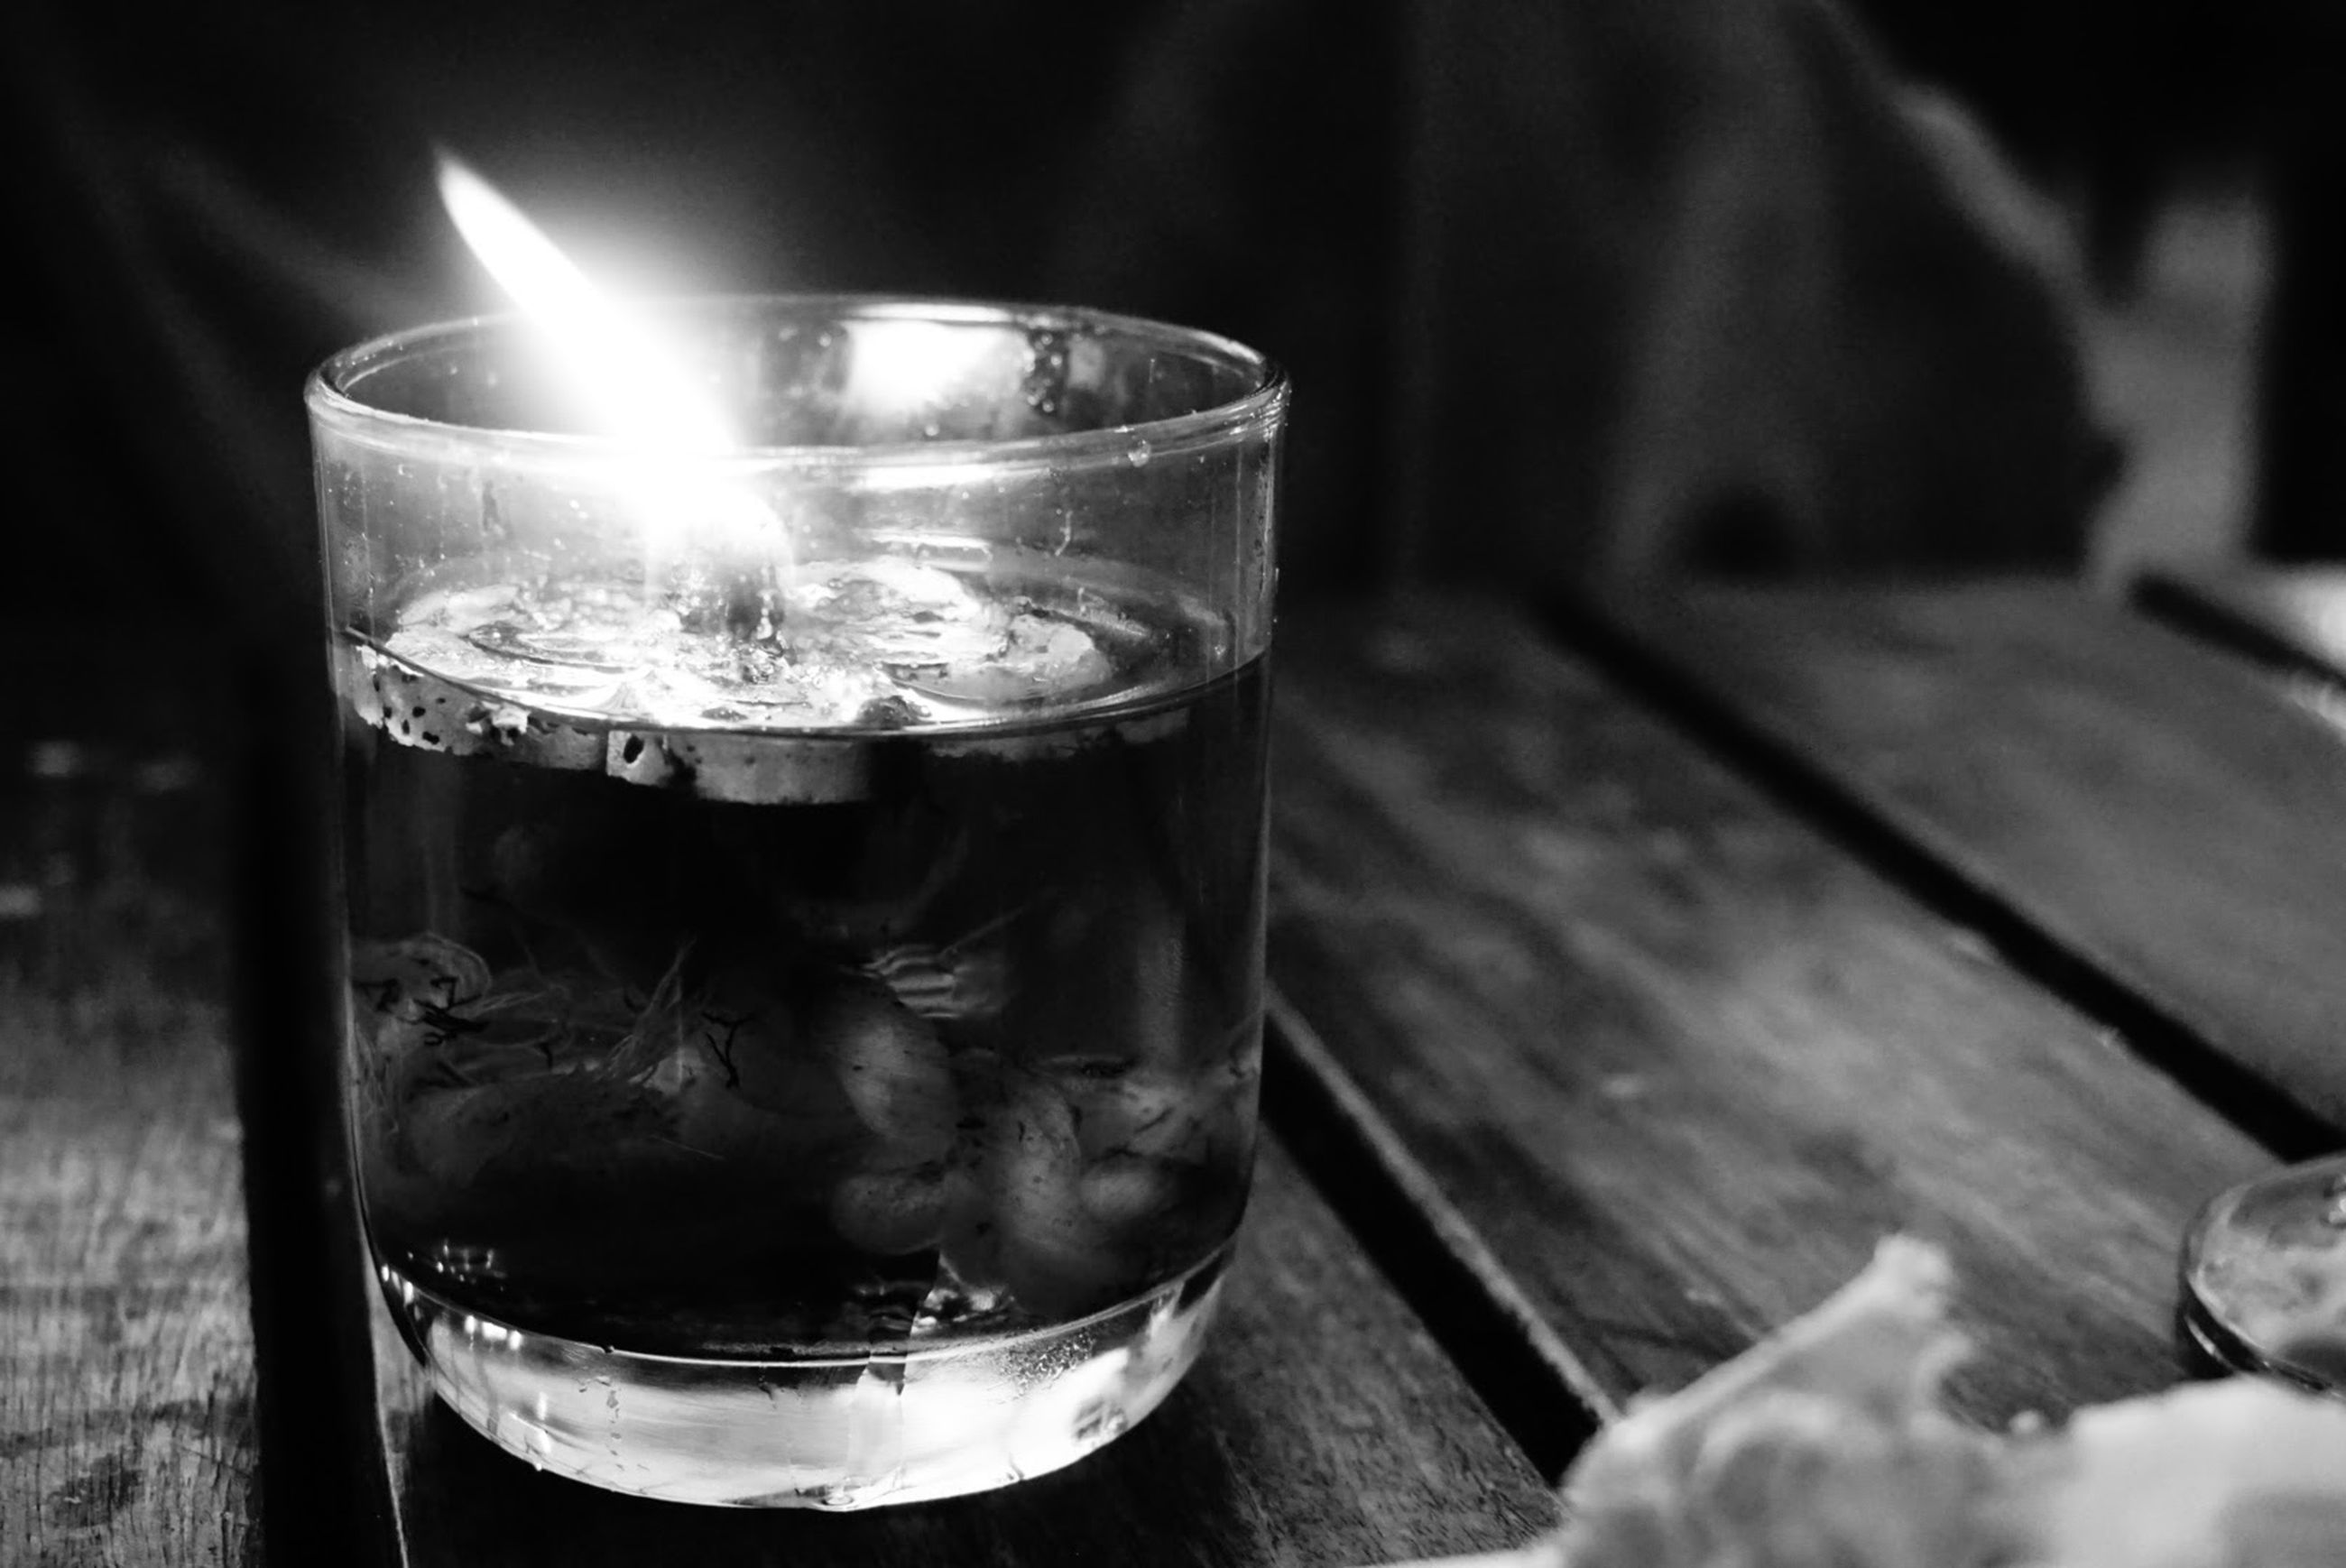 refreshment, candle, close-up, alcohol, focus on foreground, still life, illuminated, heat - temperature, glowing, no people, lit, selective focus, dark